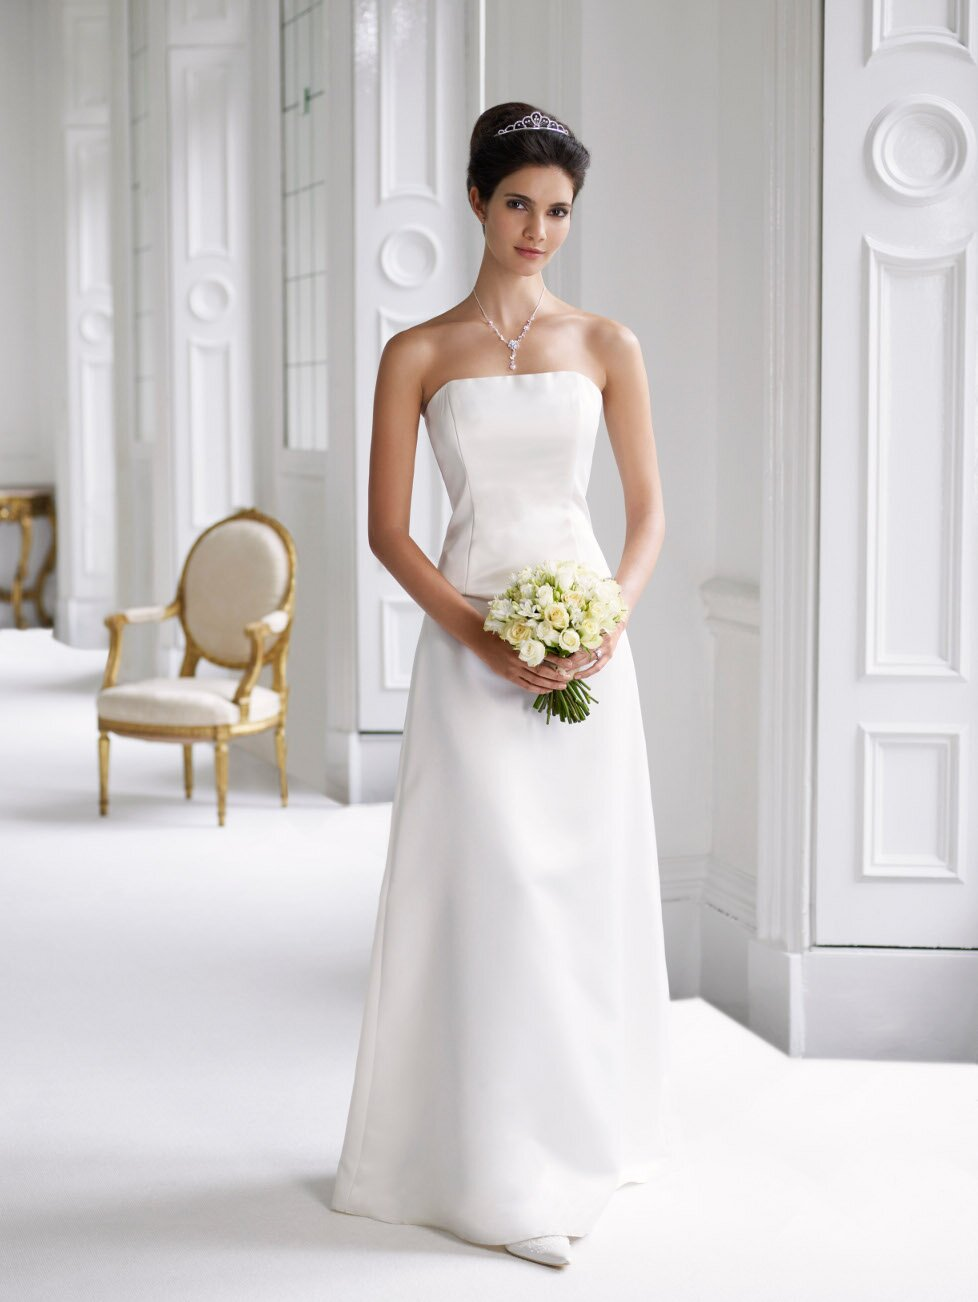 Wedding dresses with lace top Photo - 9